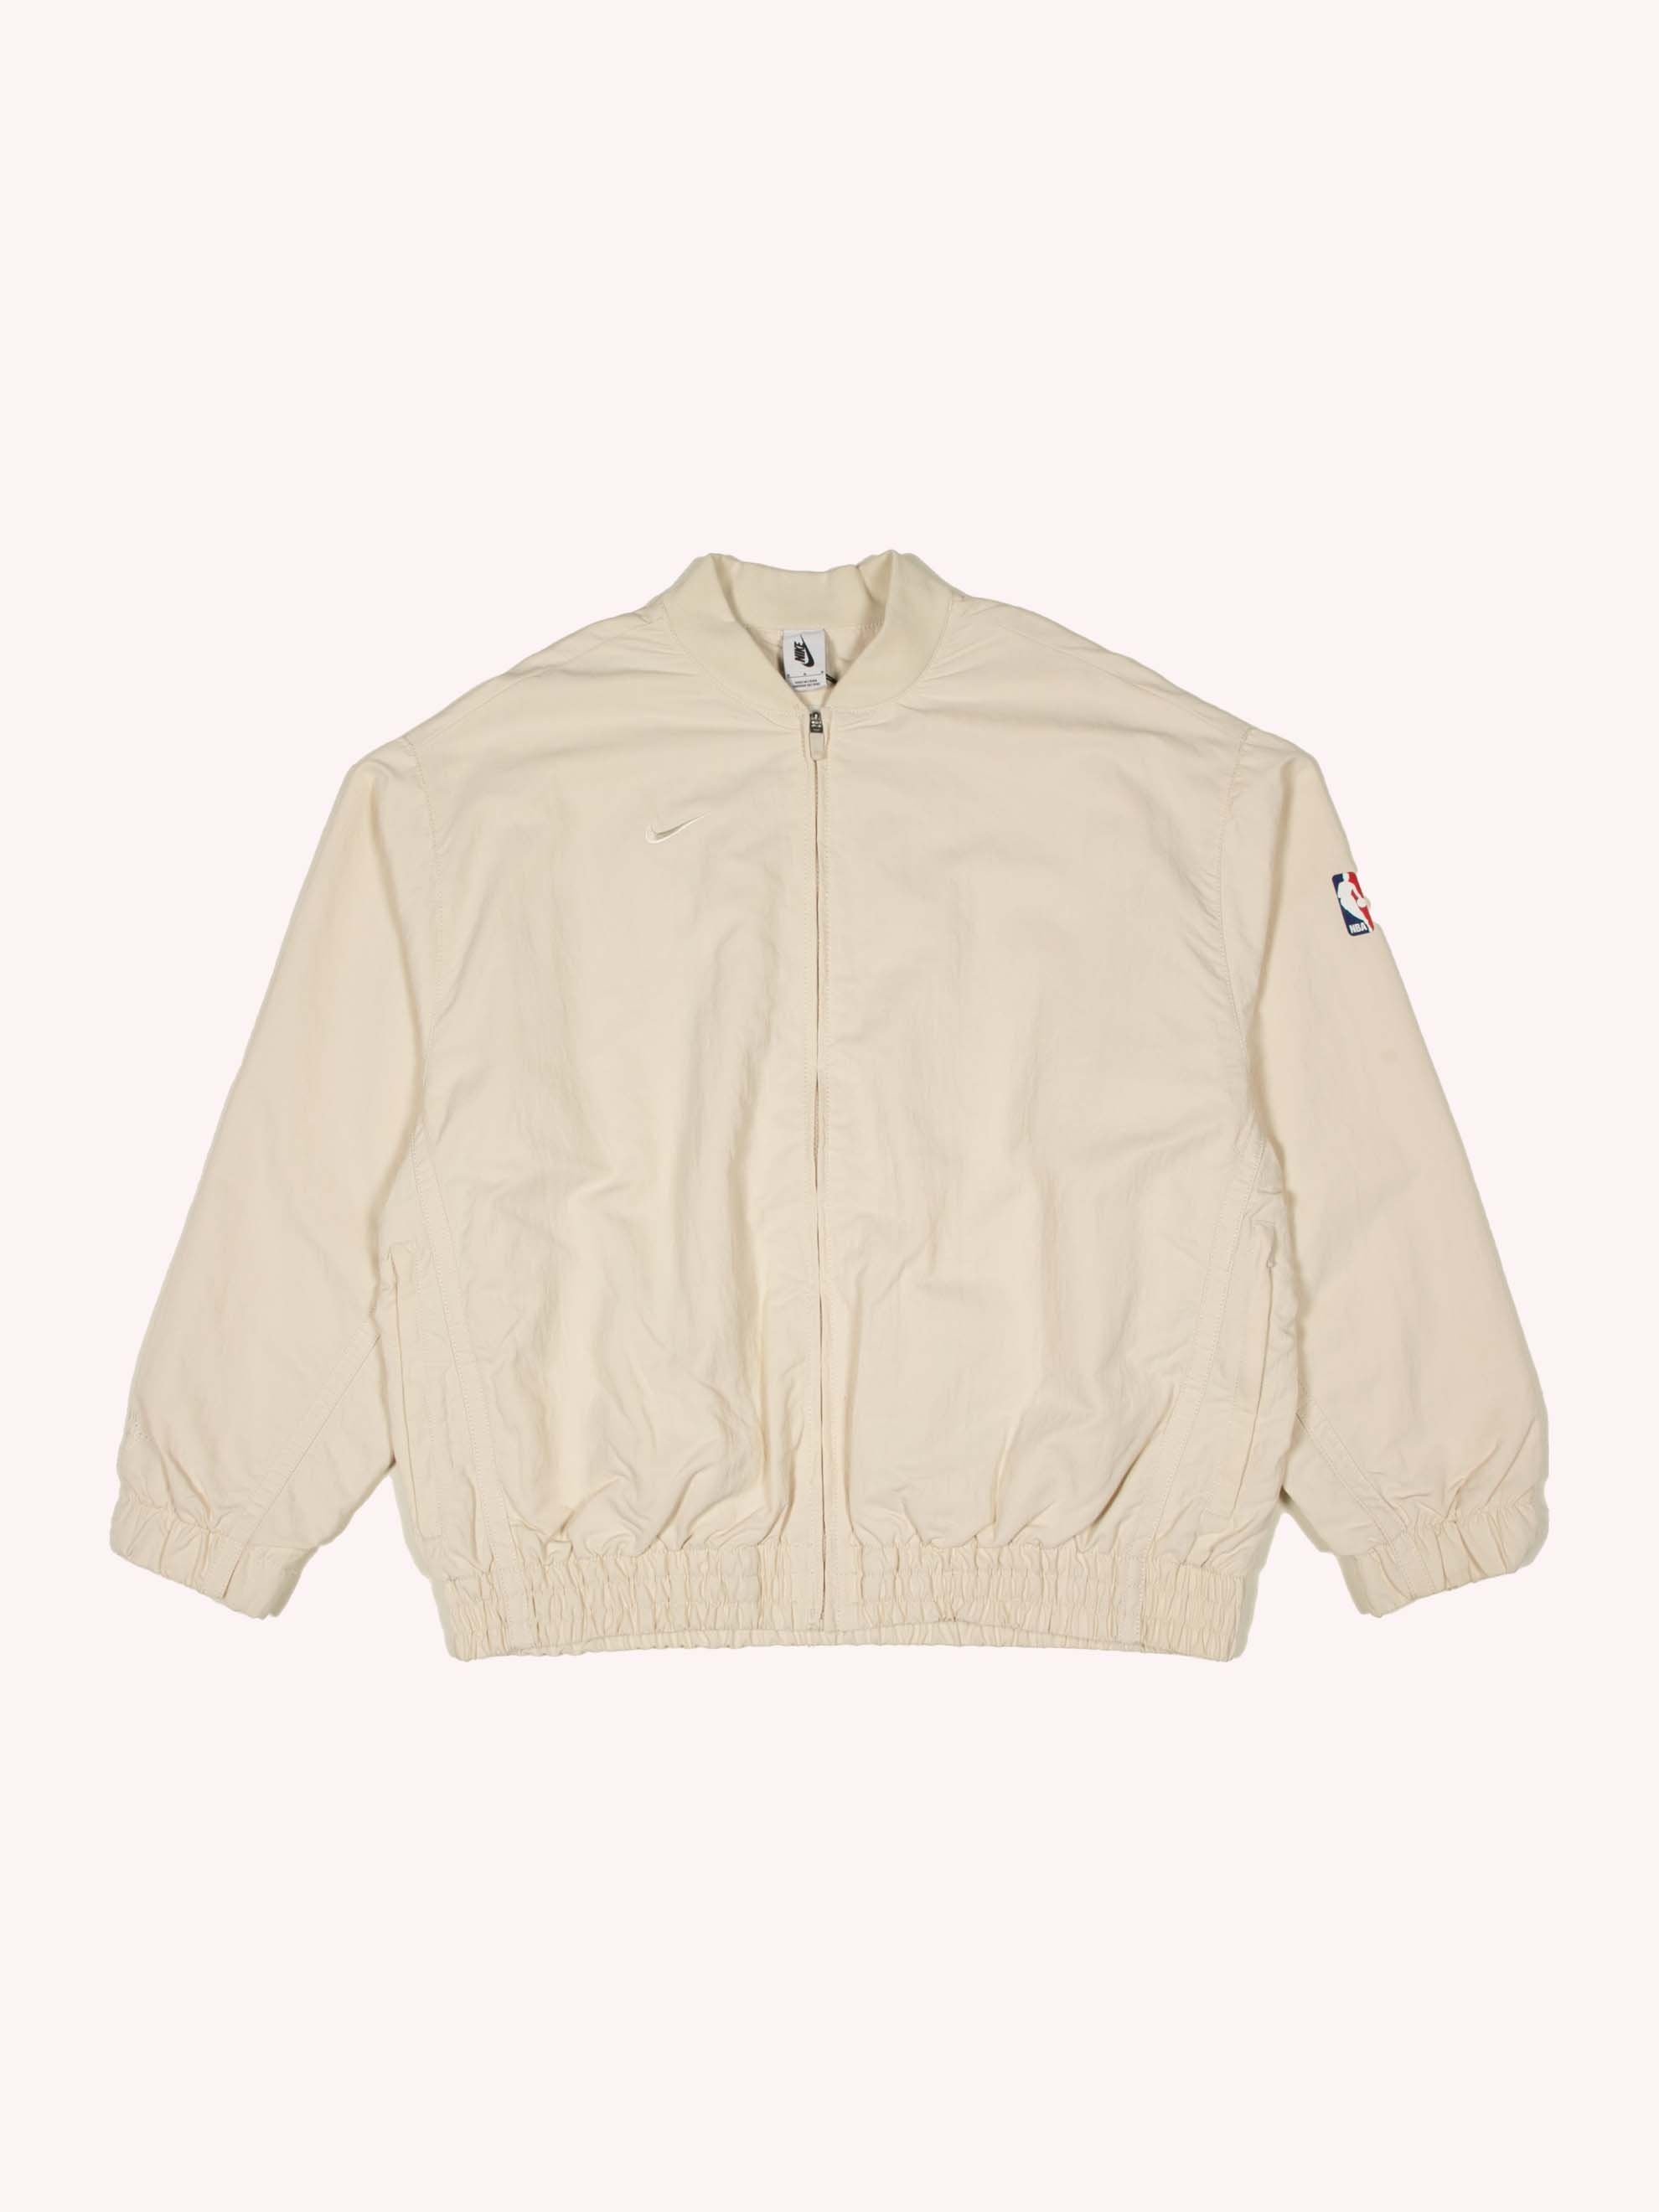 Light Cream Nike x Fear of God Basketball Jacket 1